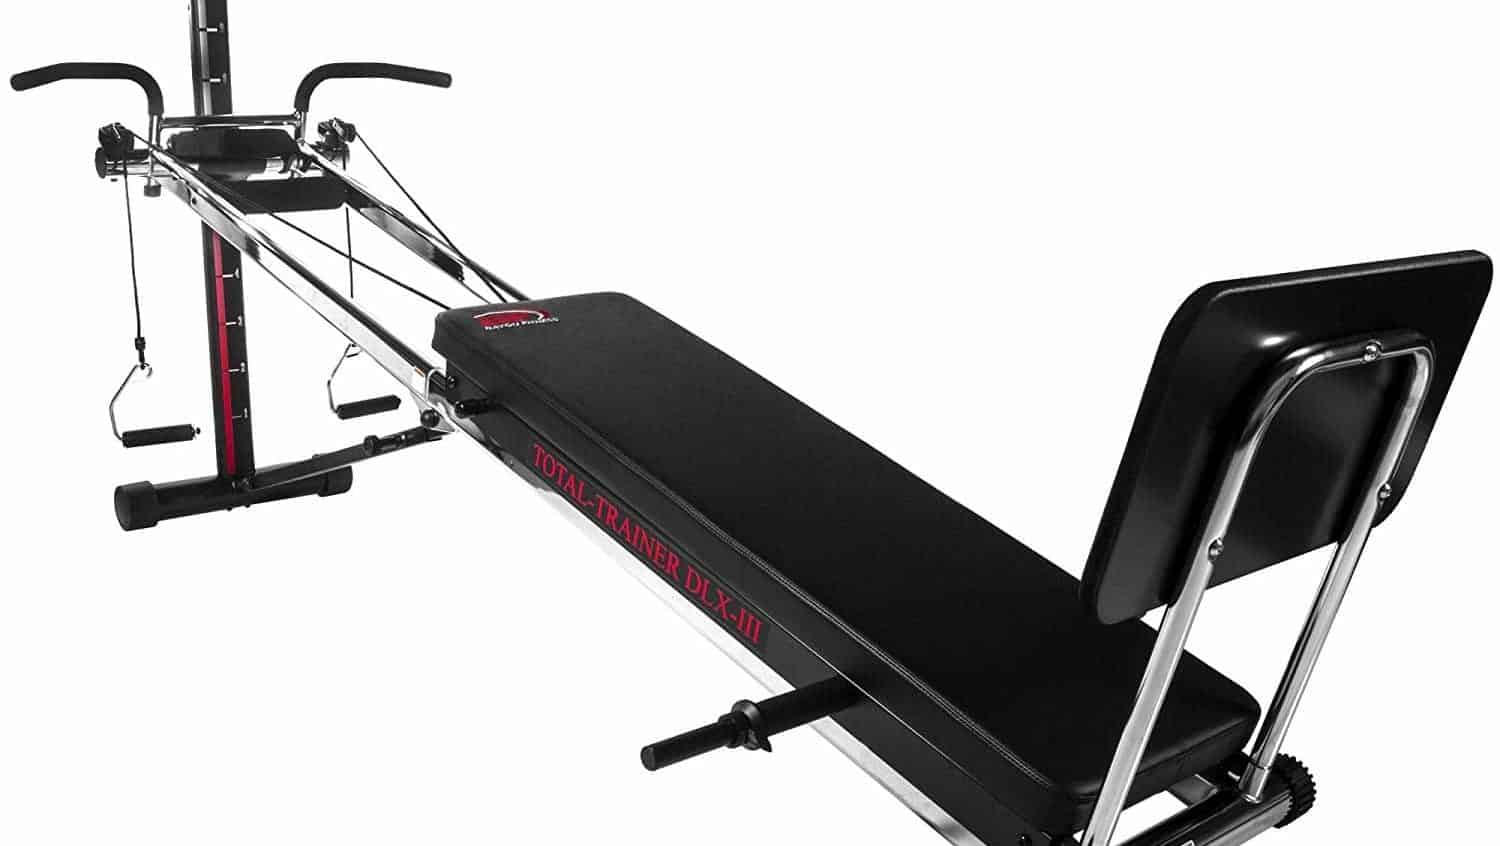 Bayou Fitness Total Trainer DLX-III Home Gym Review